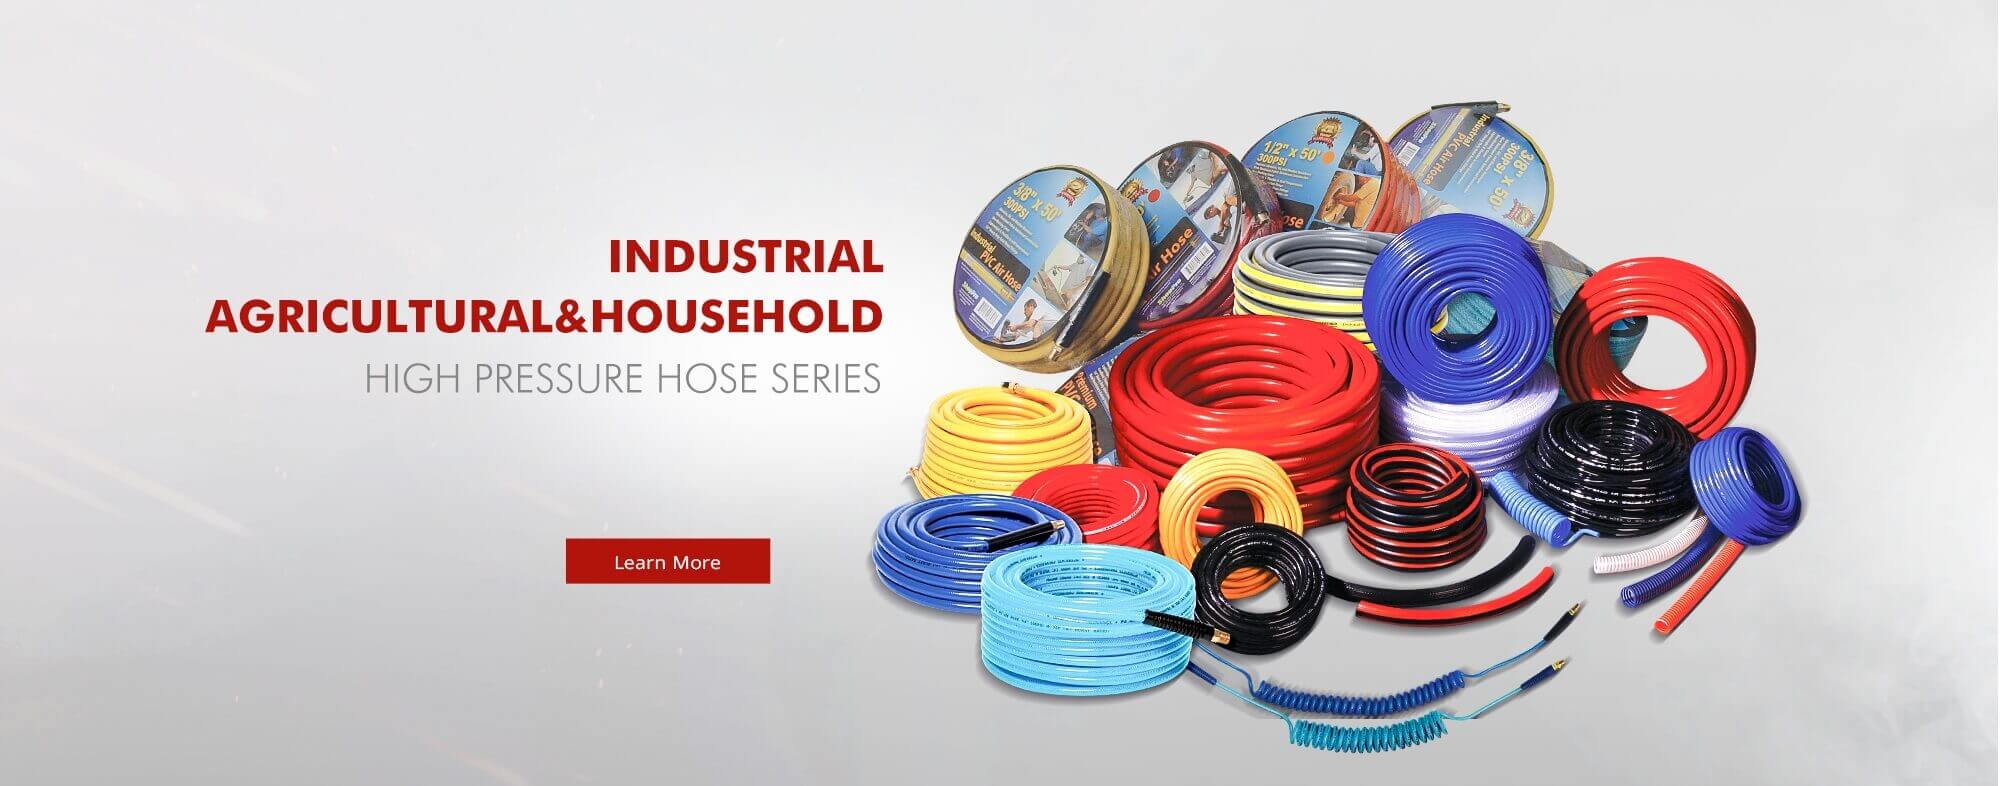 hose and hardware